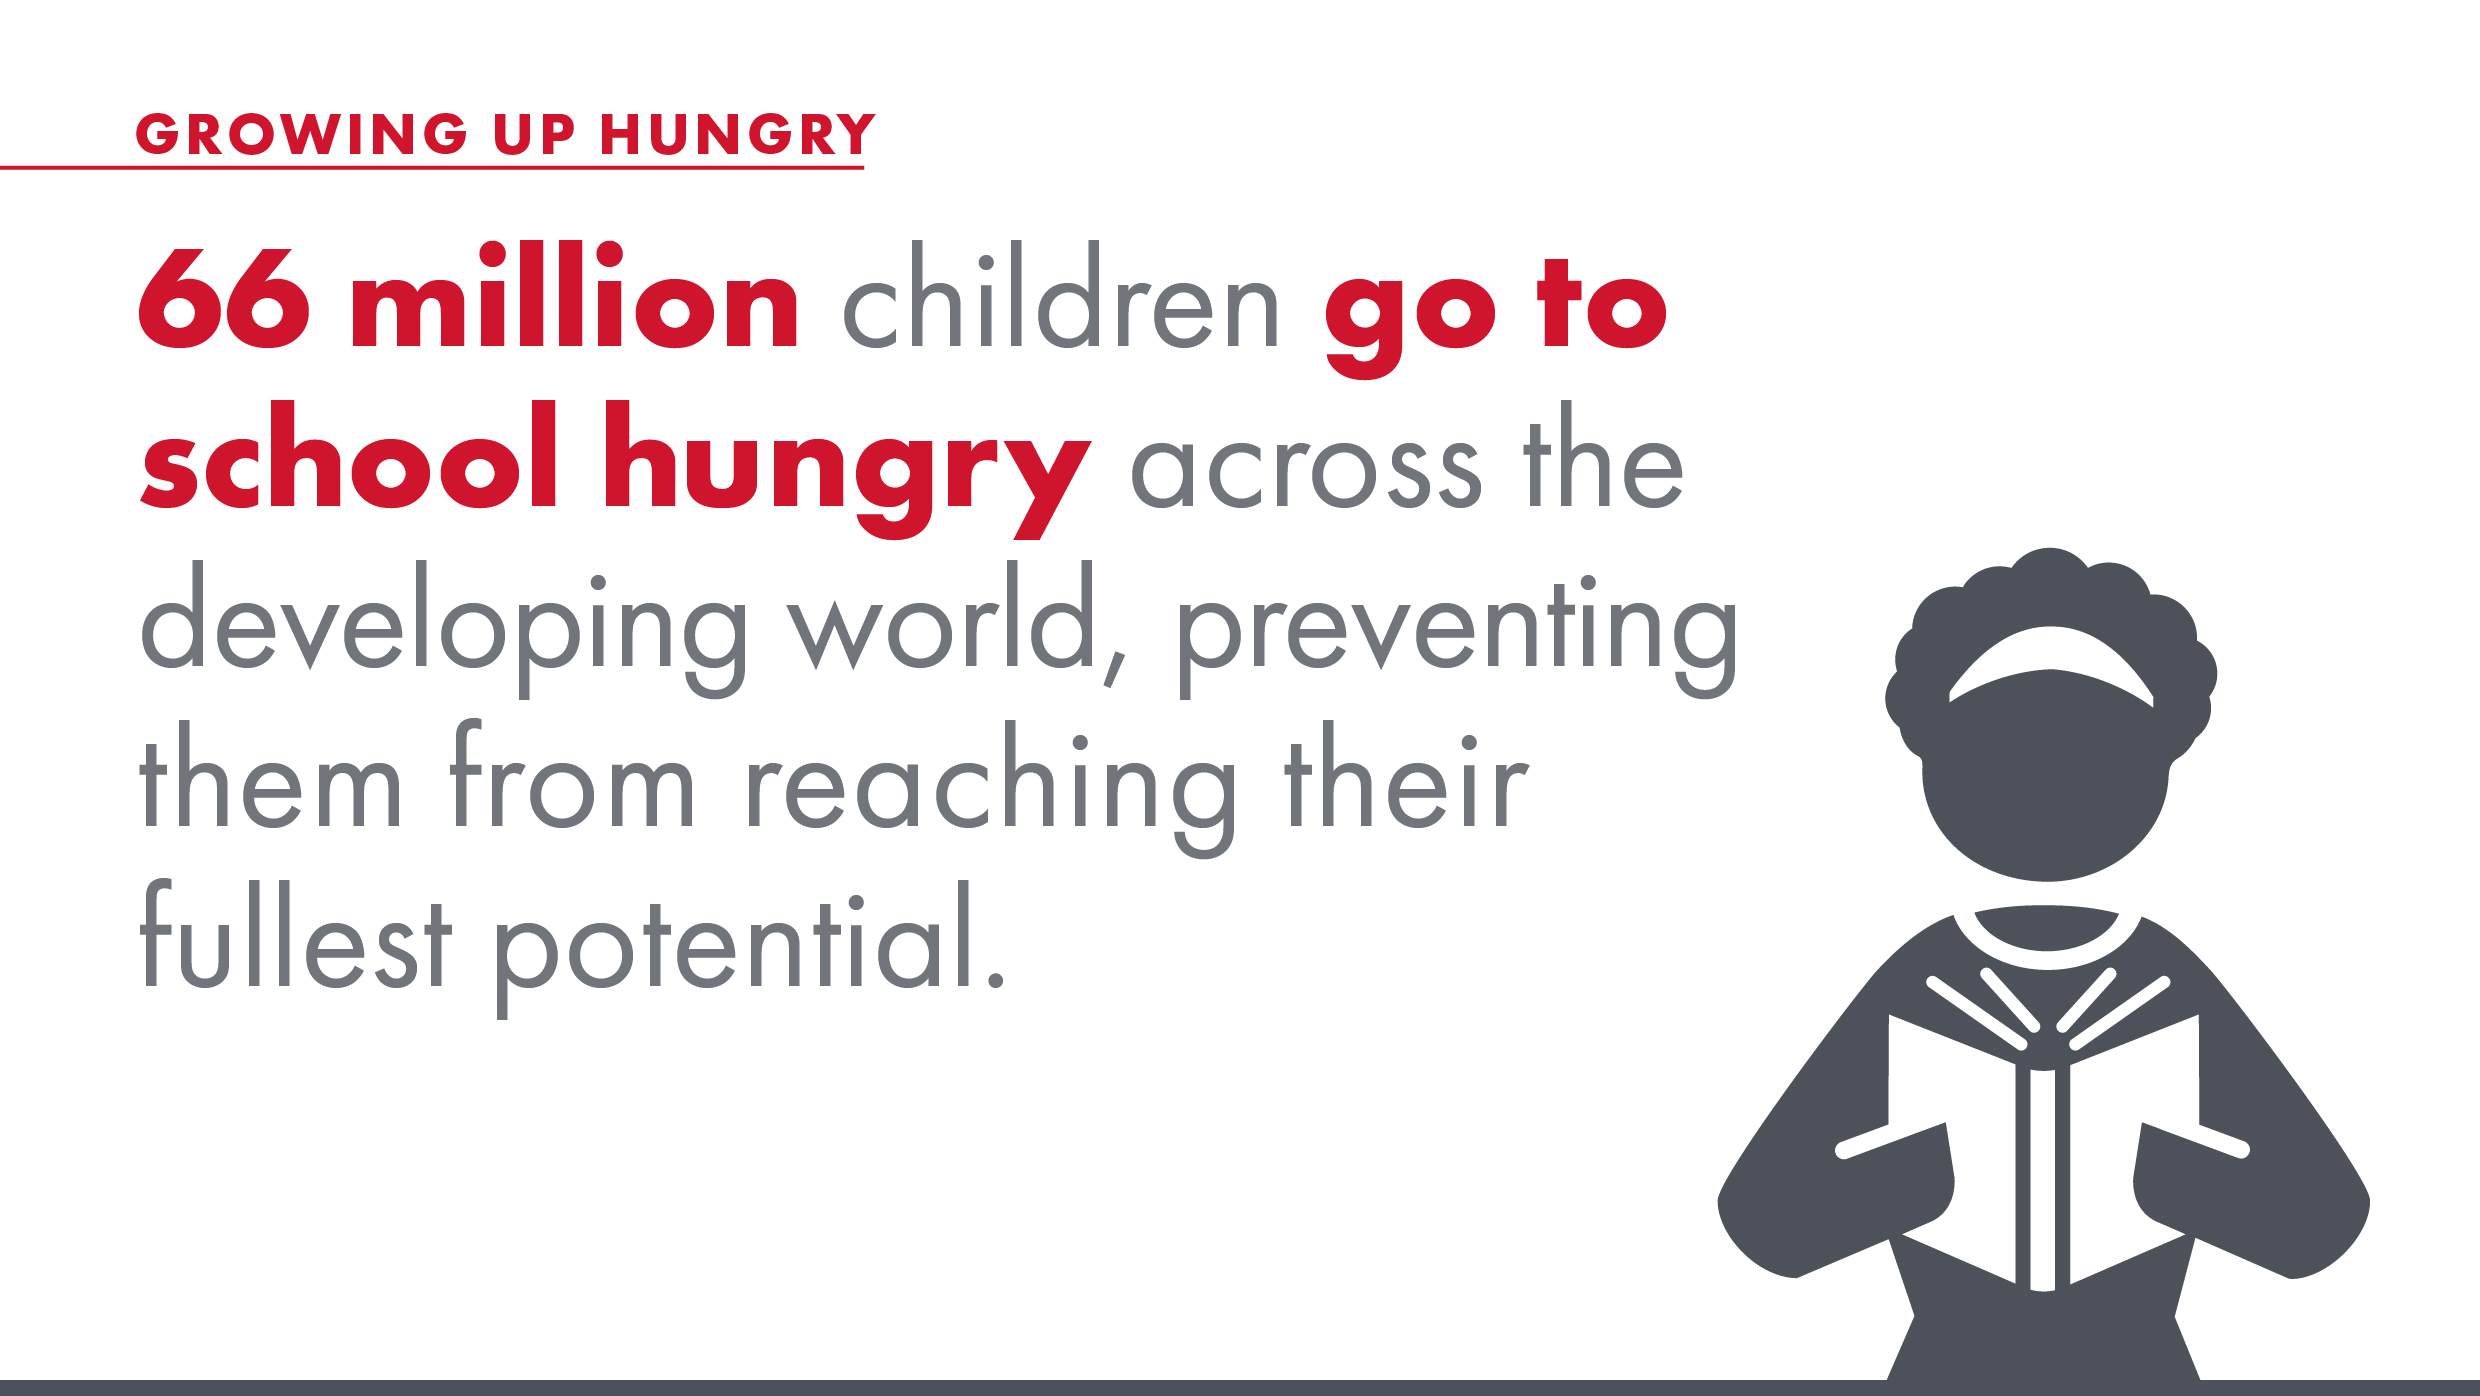 66 million children go to school hungry across the developing world, preventing them from reaching their fullest potential.